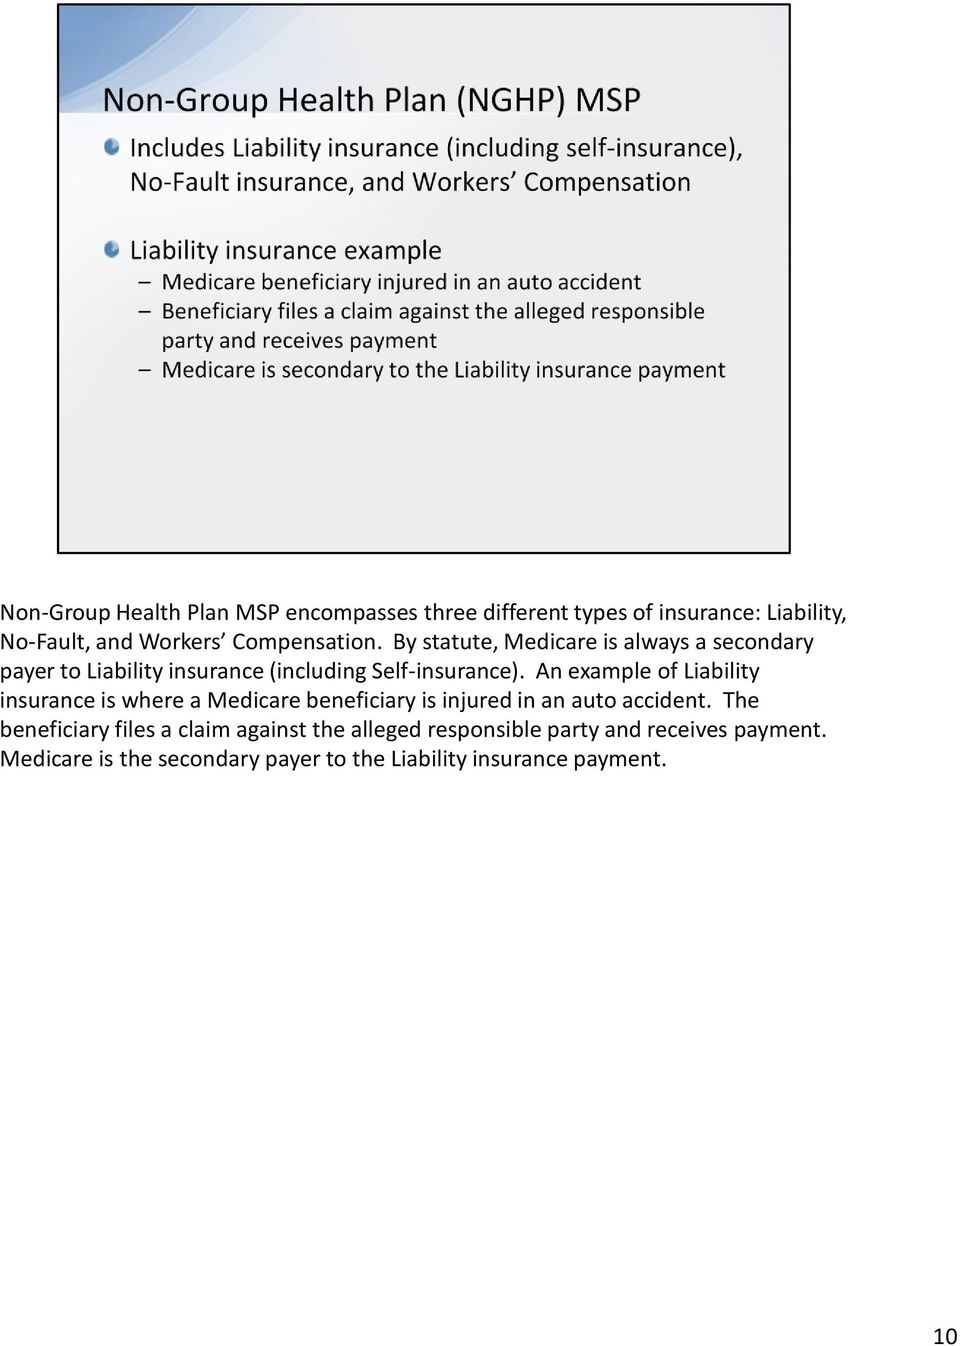 An example of Liability insurance is where a Medicare beneficiary is injured in an auto accident.